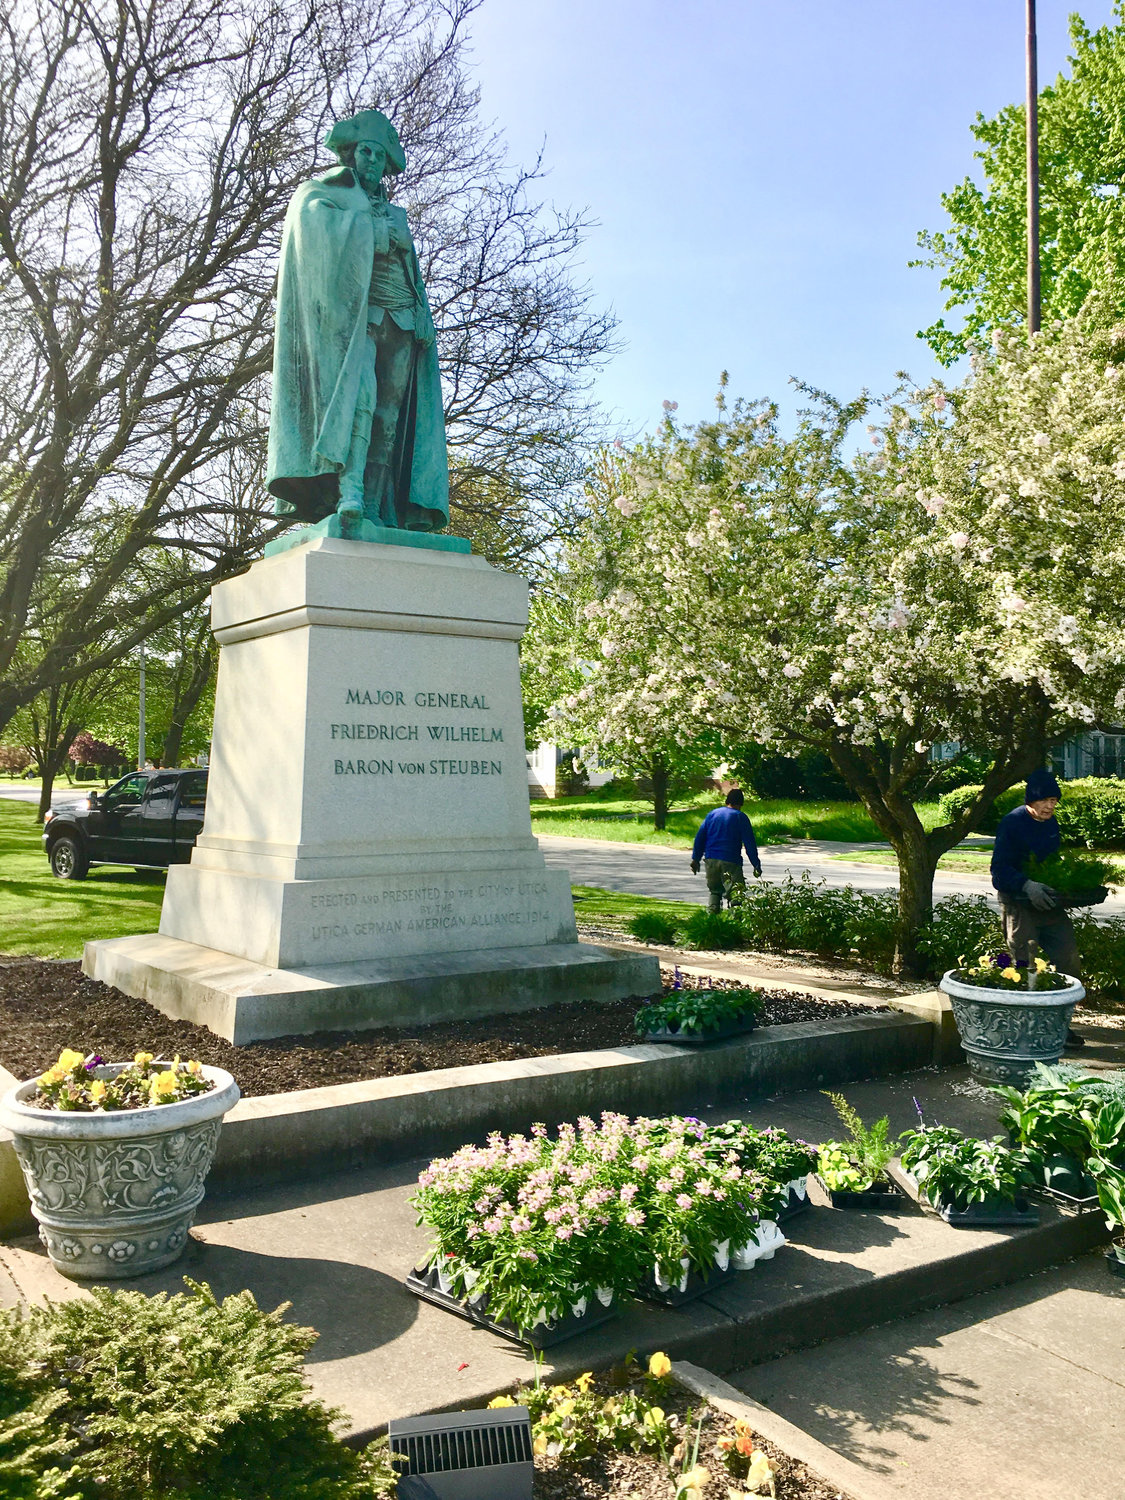 HISTORIC MARKER — The Gen. Baron von Steuben statue honoring the Revolutionary War ally and hero at the Memorial Parkway is surrounded my new flowers planted by members of the non-profit Central New York Conservancy, which works to rehabilitate and maintain Utica's parks system.